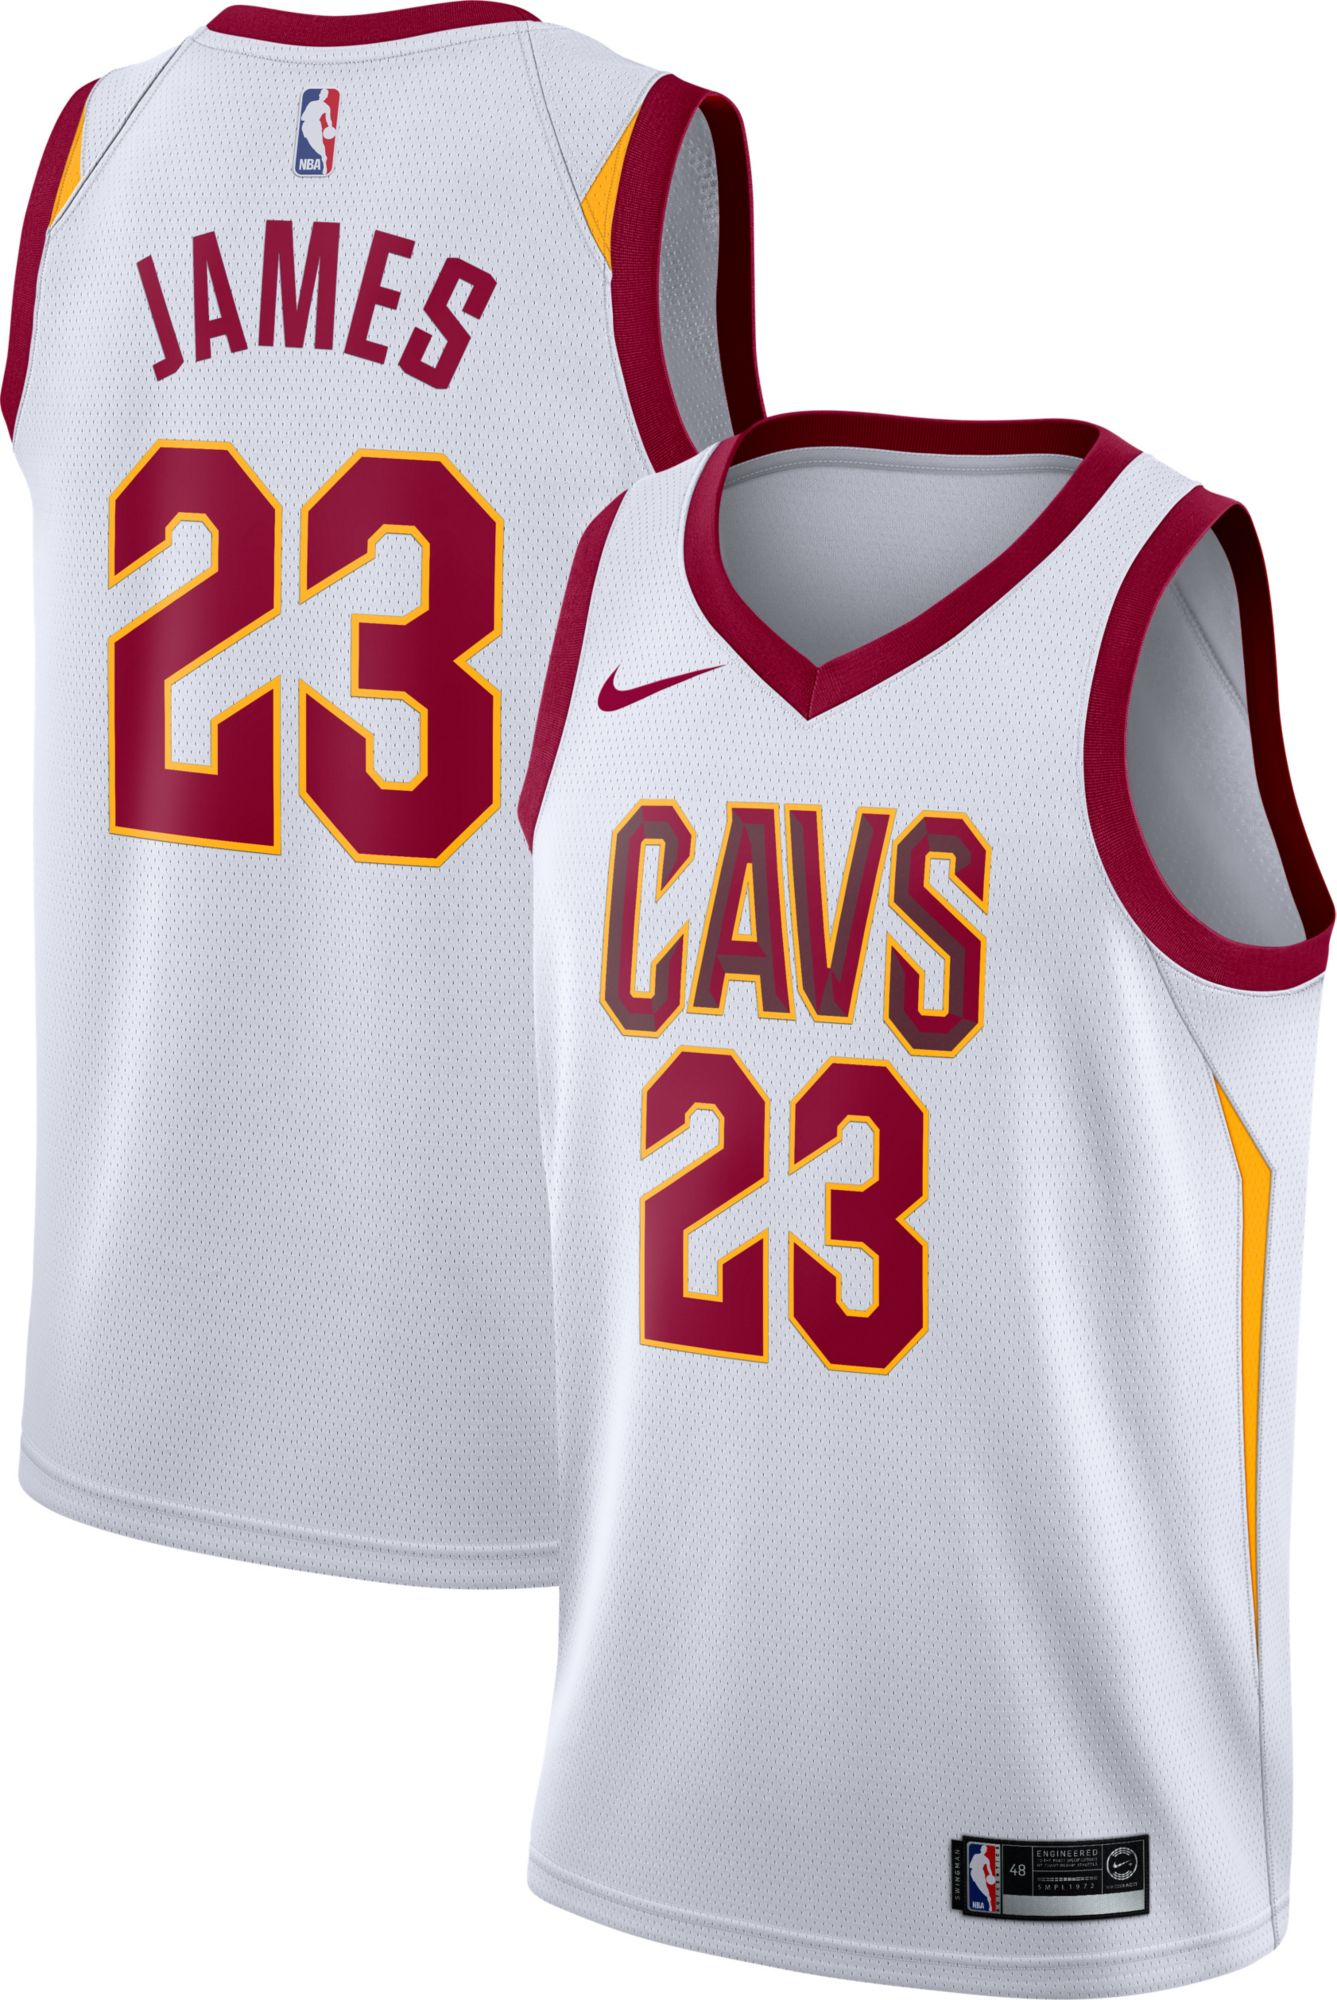 ... norway nike mens cleveland cavaliers lebron james 23 white dri fit  swingman jersey walmart a80b5 09d3f 6ad287e8a